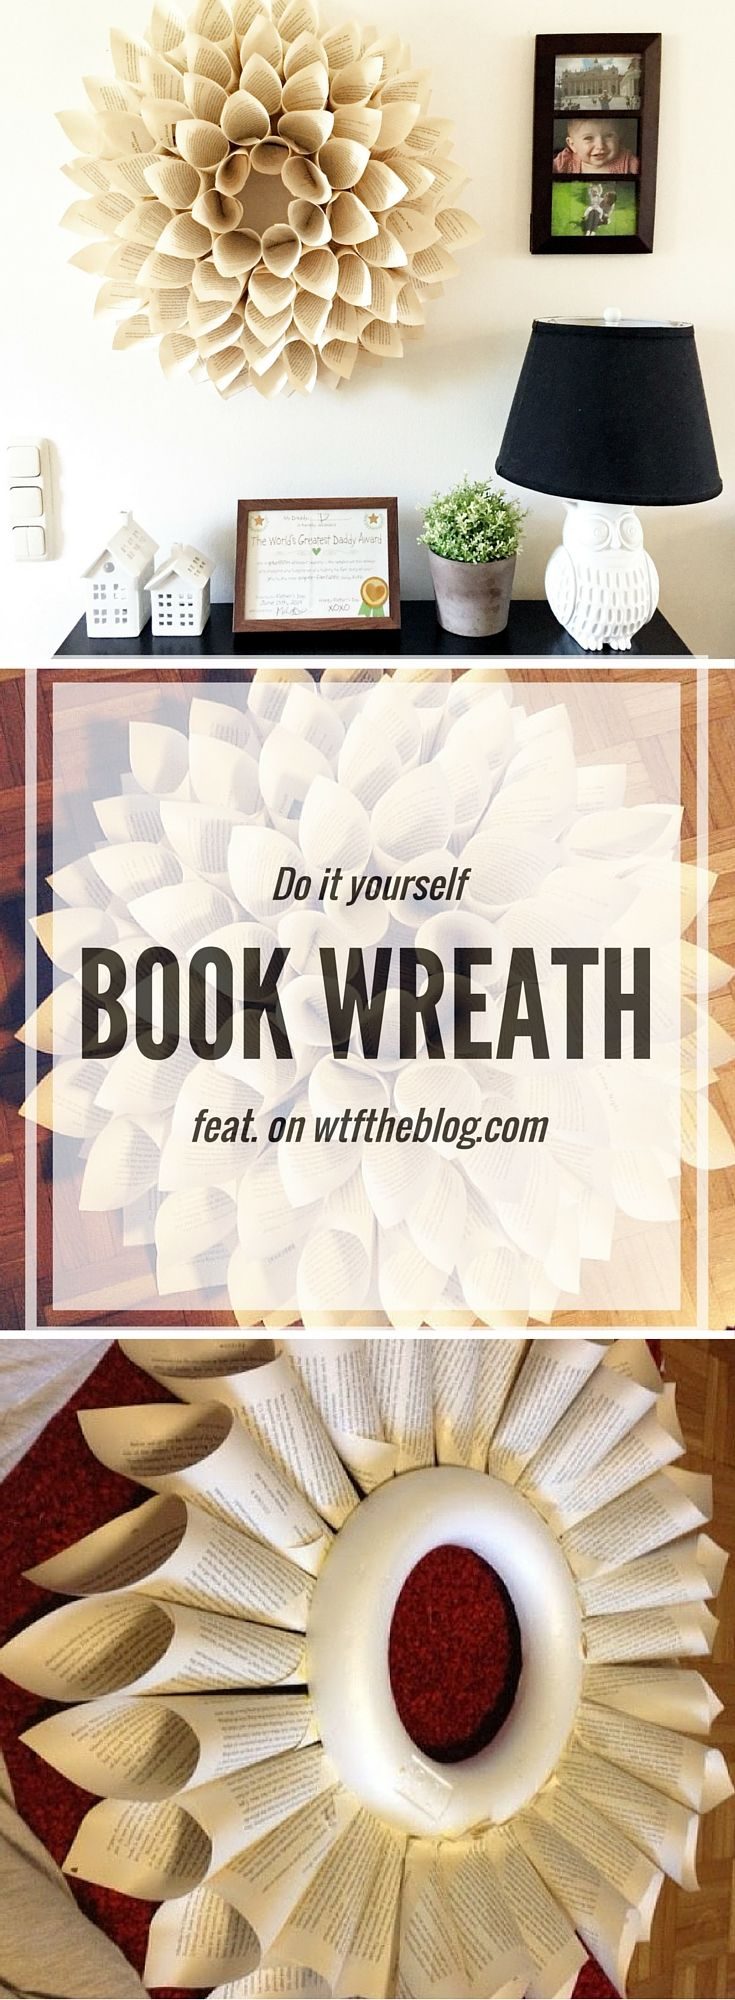 Uncategorized Book Decor 25 unique book decorations ideas on pinterest art folded diy page wreath